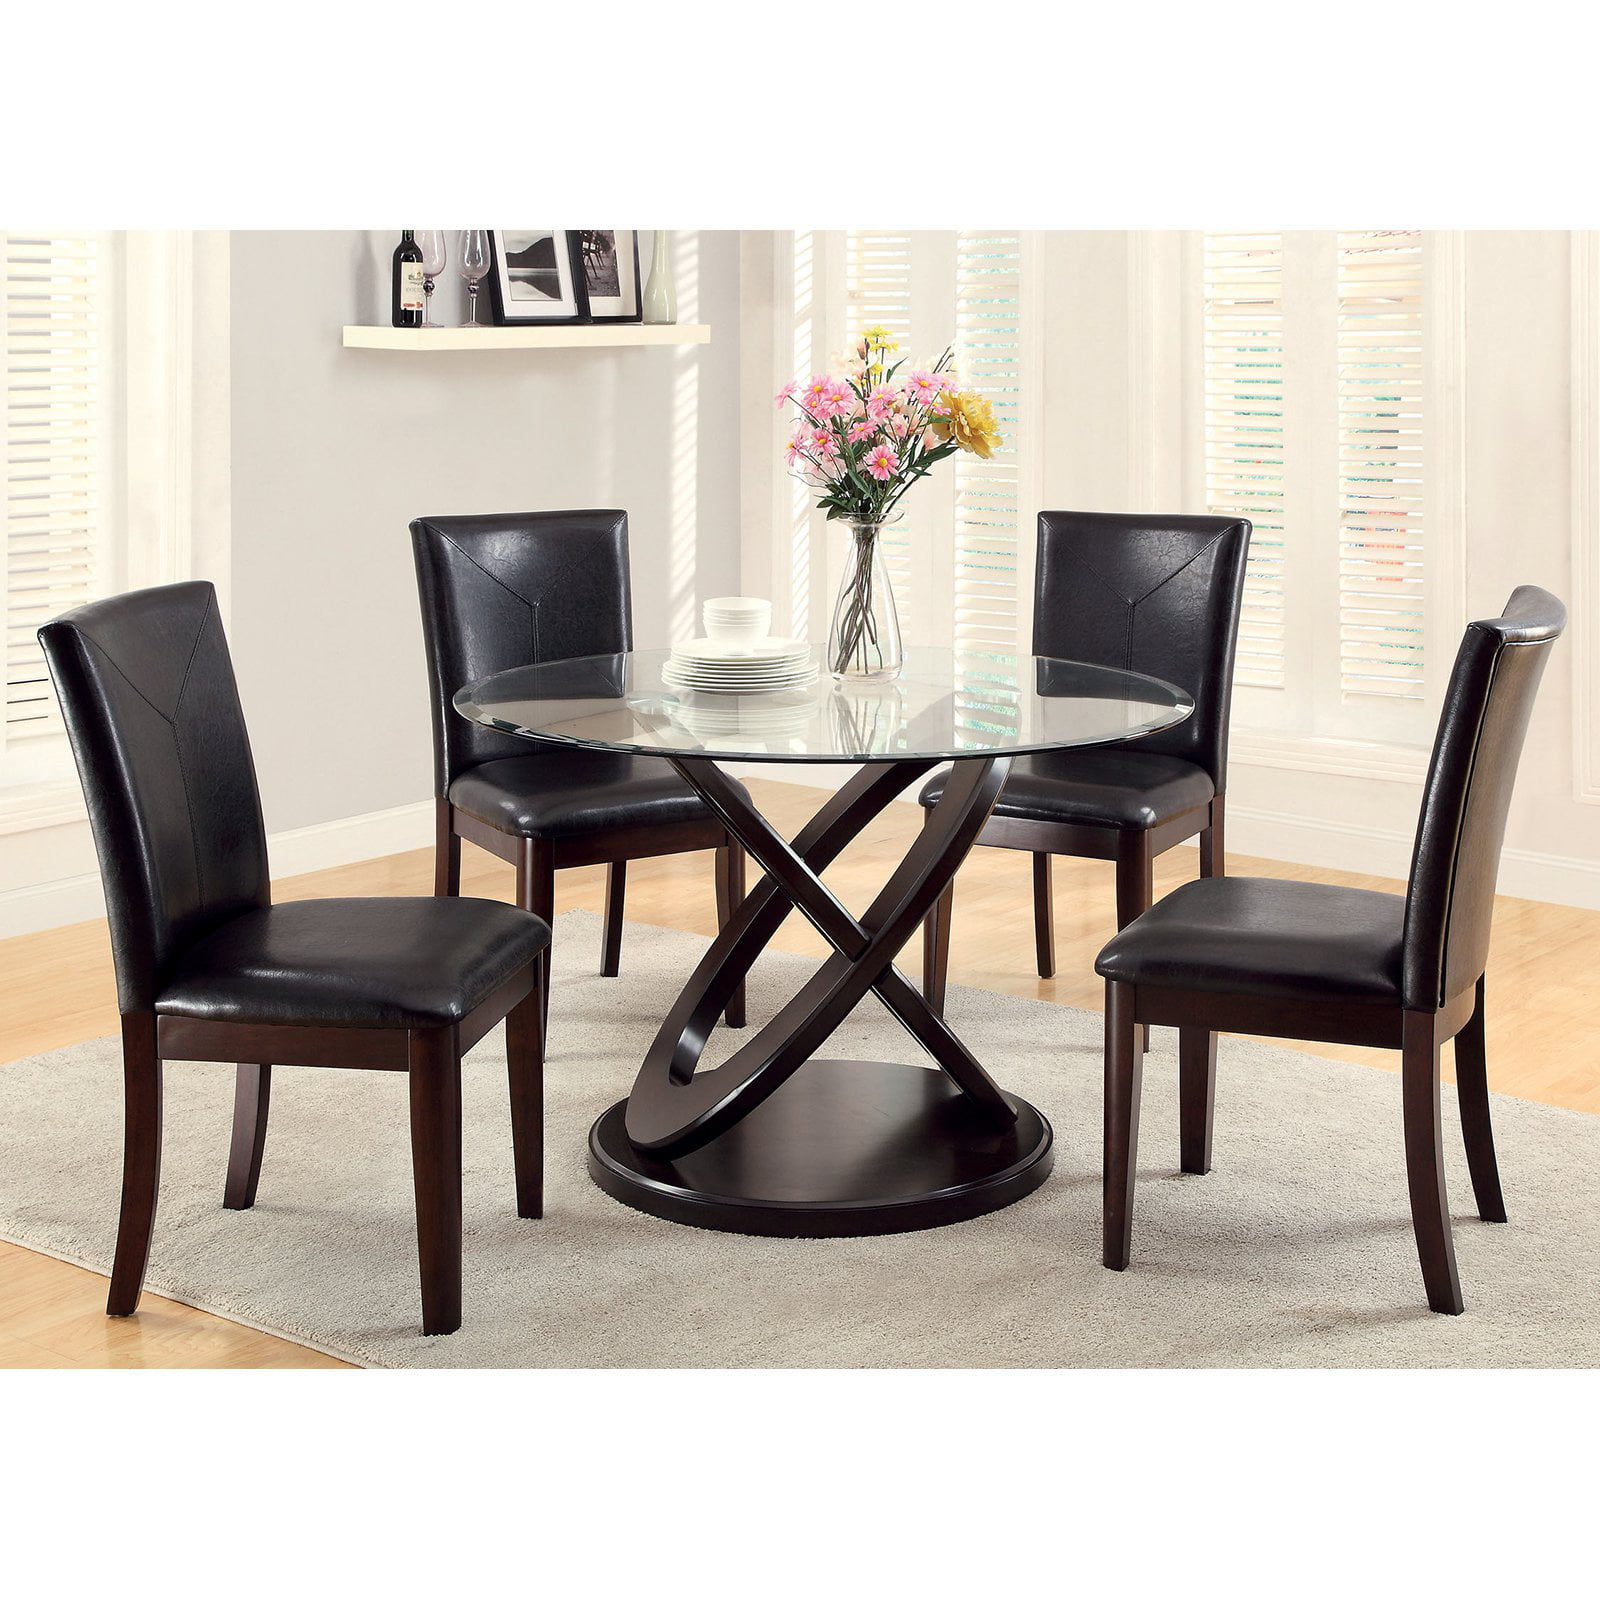 Furniture Of America Ollivander 5 Piece Gl Top Dining Table Set Dark Walnut